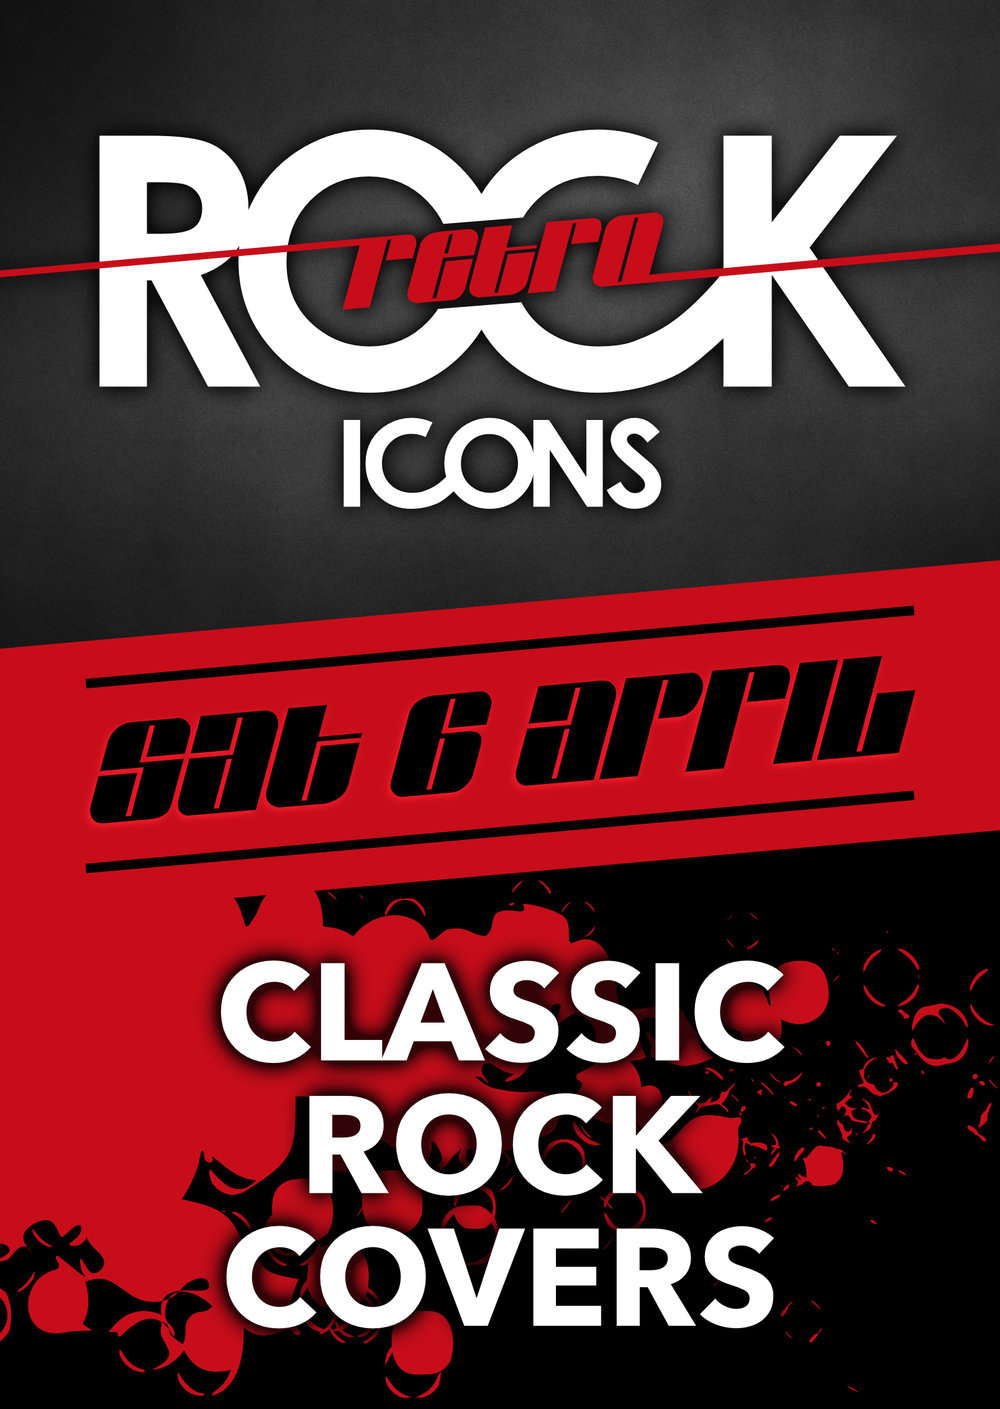 Retro Rock Icons